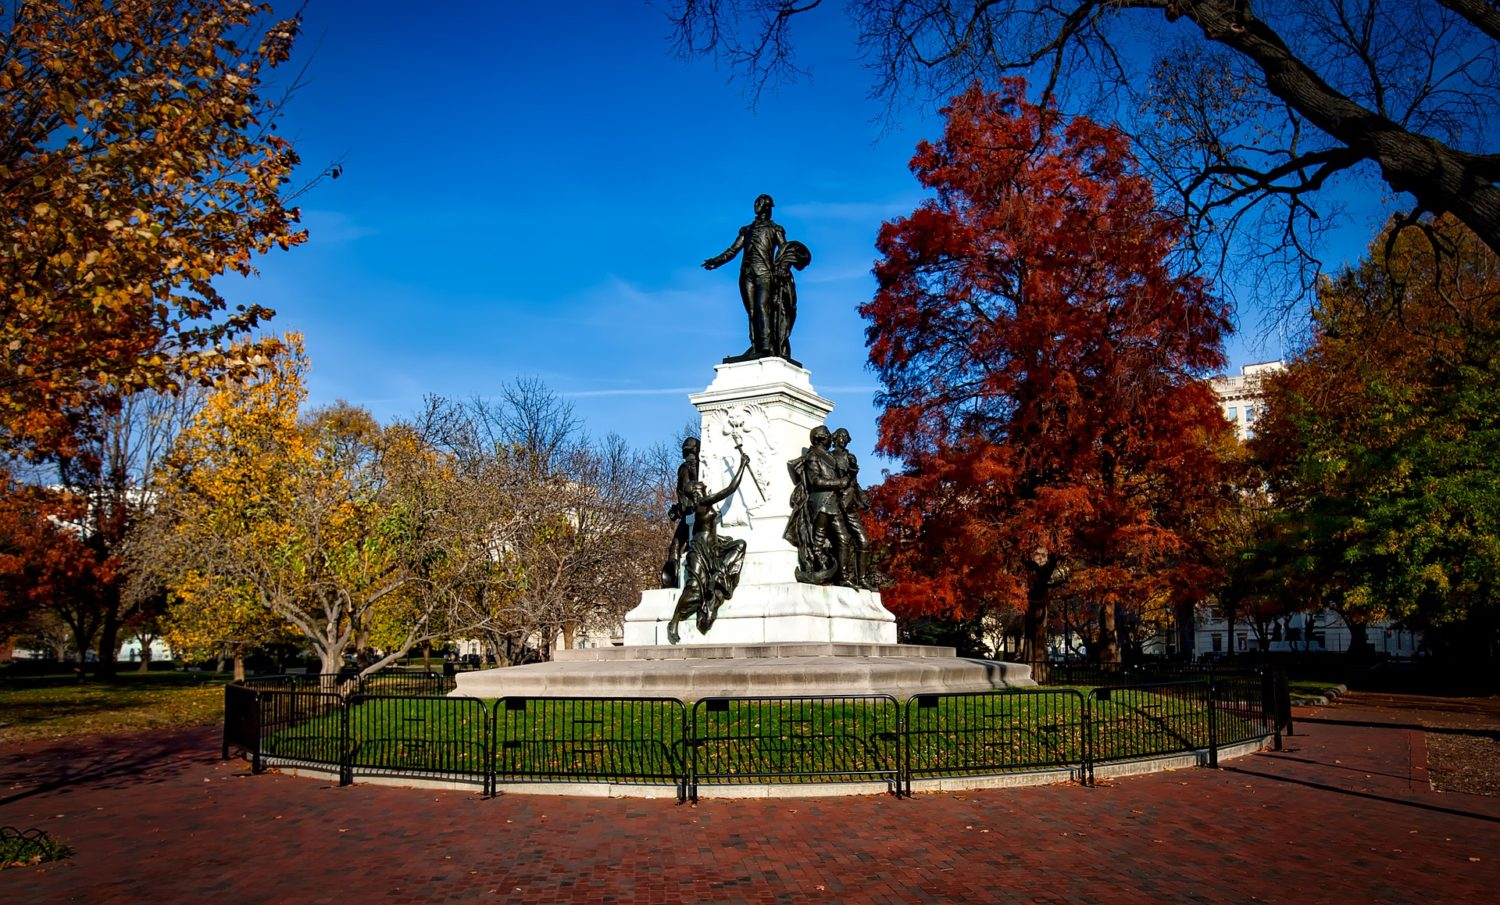 Lafayette Square, Washington, D.C.